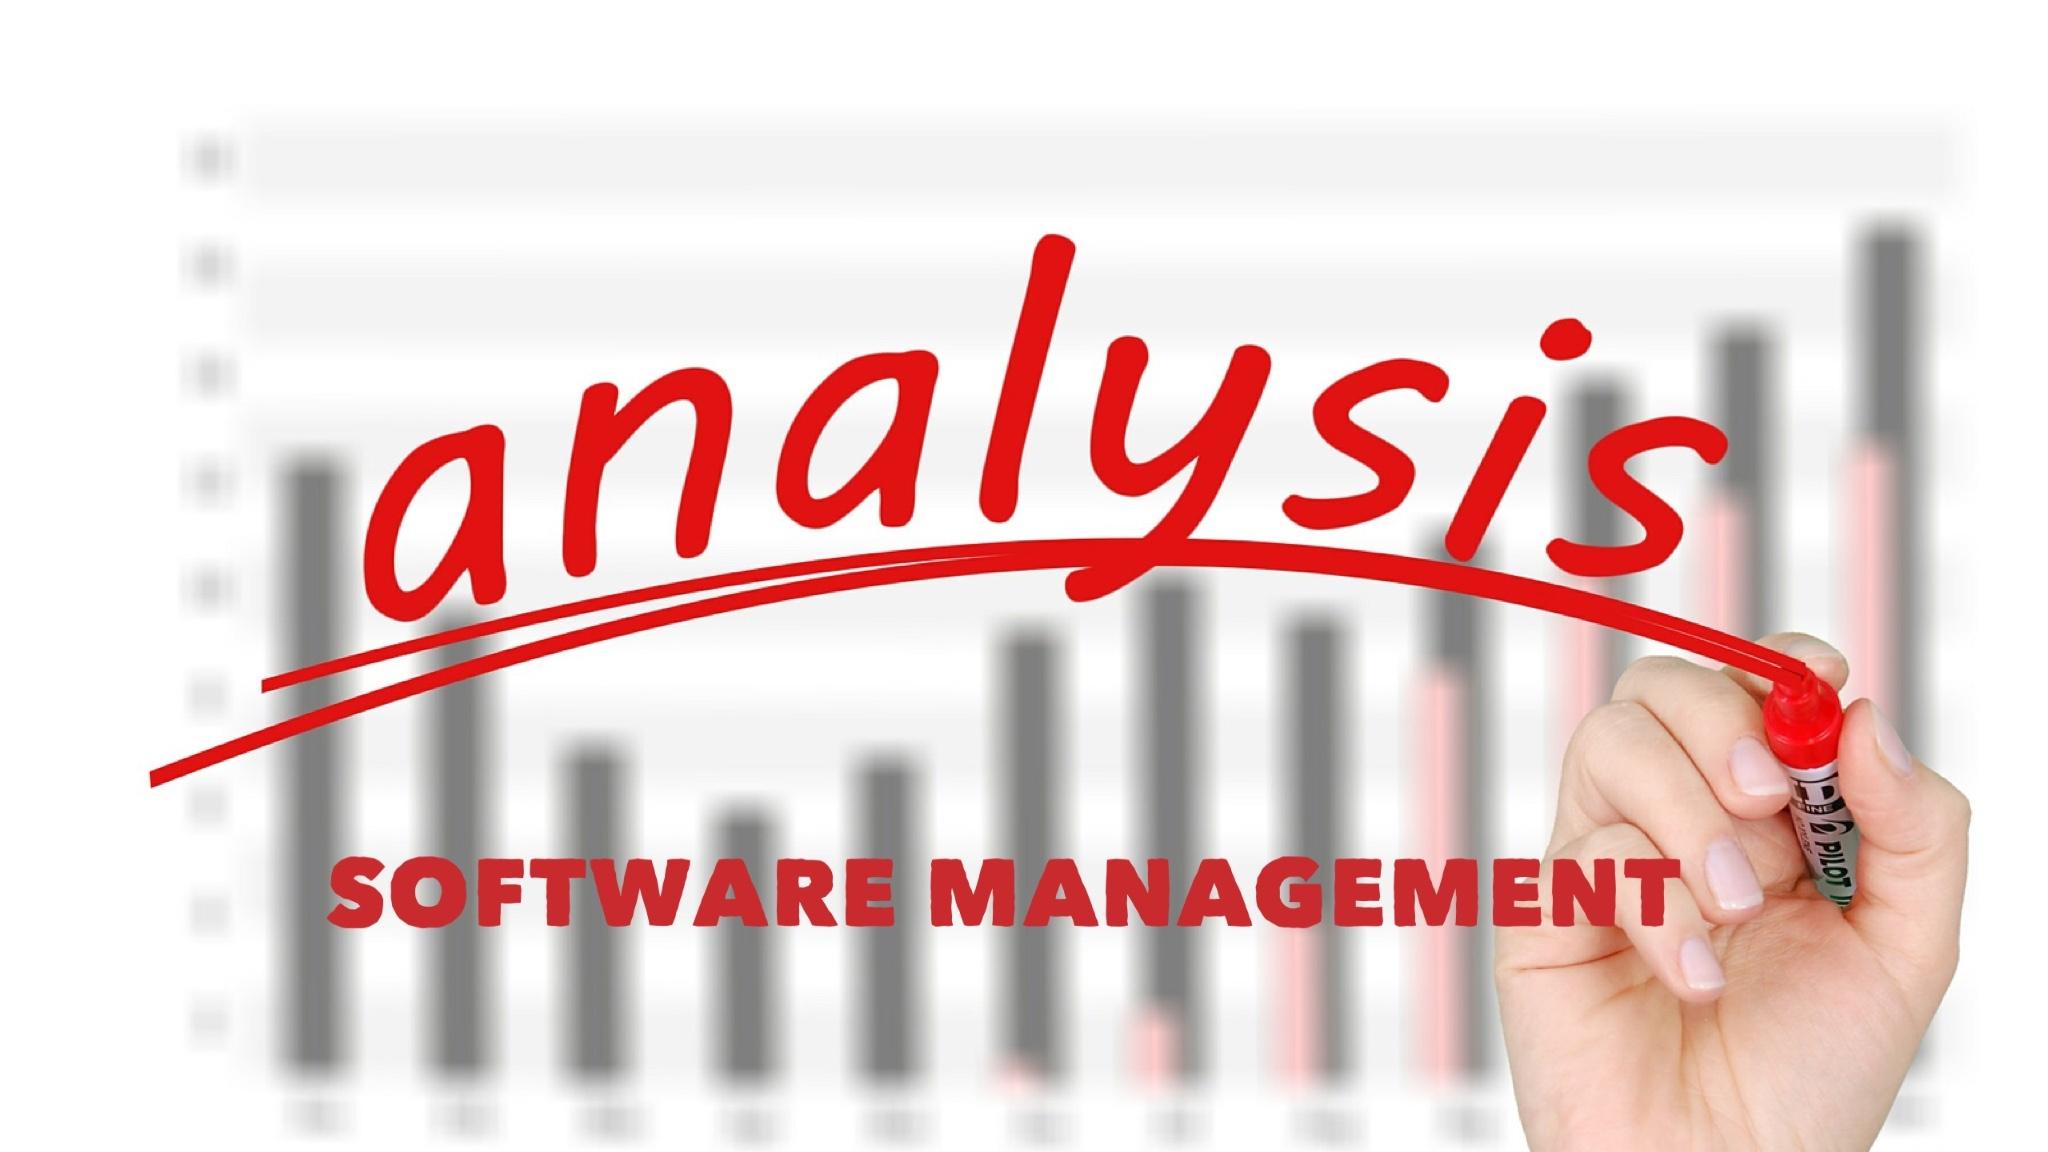 Software Mgt Analysis Typorama.jpg